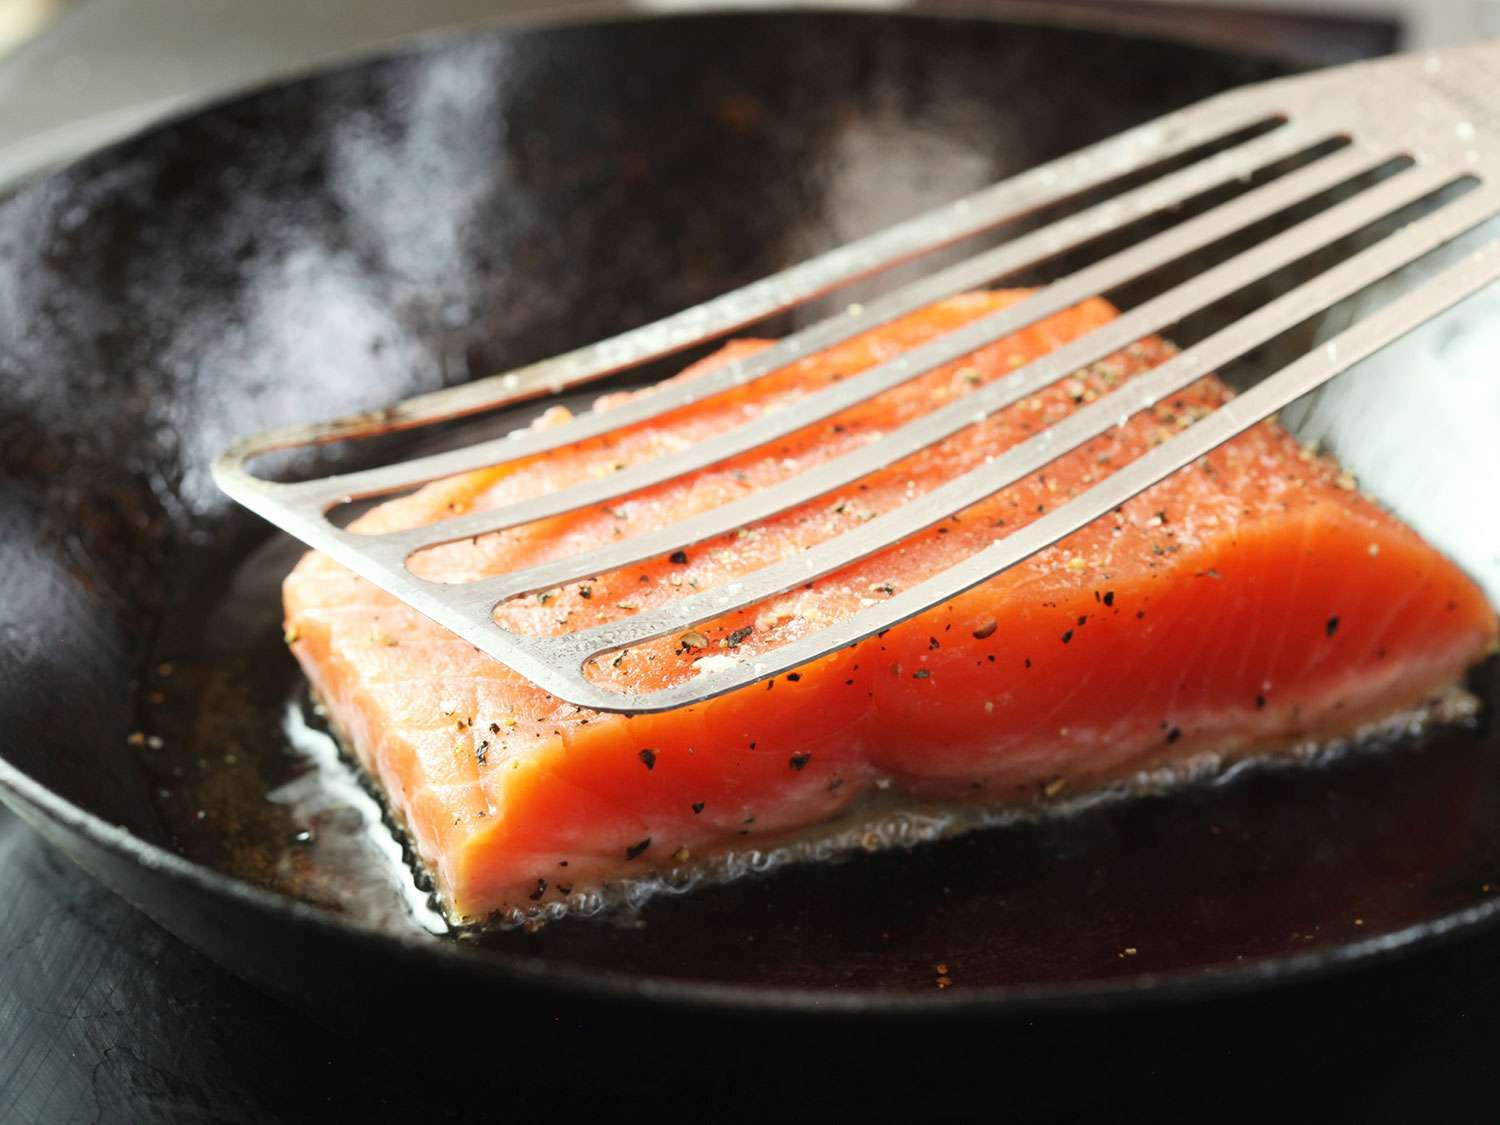 Pressing a piece of salmon against the surface of a skillet with a fish spatula